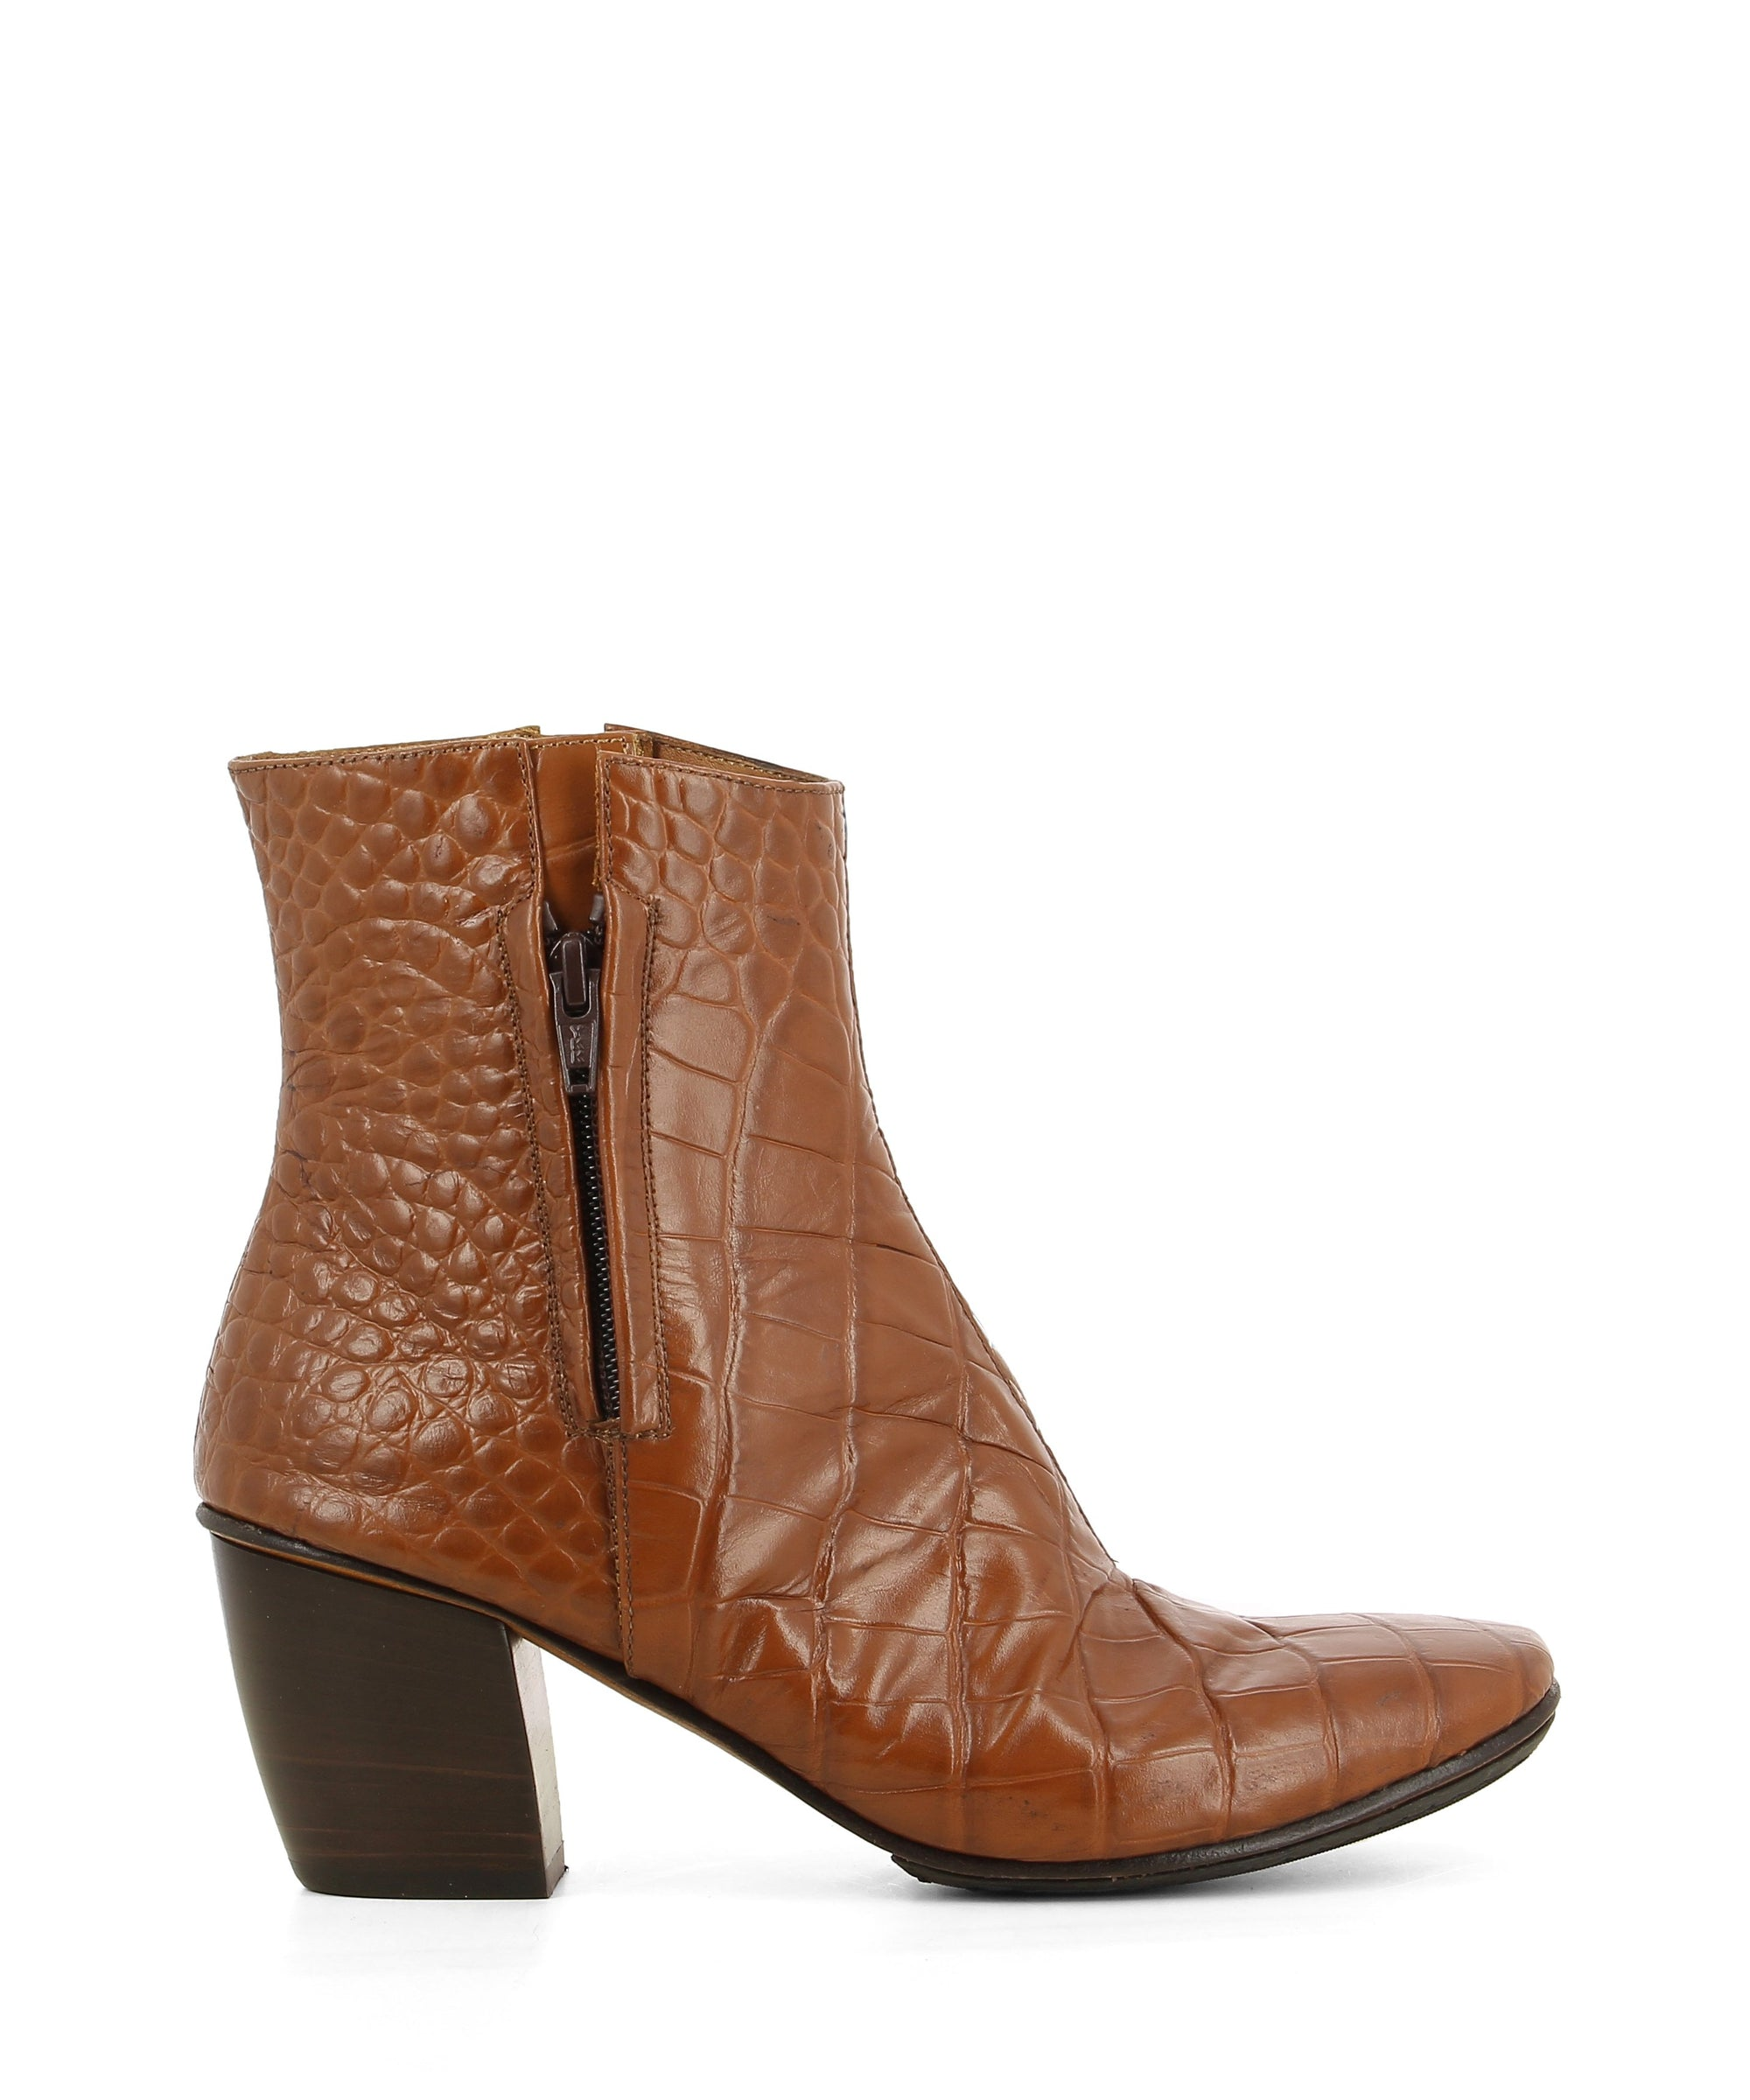 A tan croc leather Italian made ankle boot that has dual zipper fastening and features a 6cm block heel and a soft square toe by 2 Baia Vista.